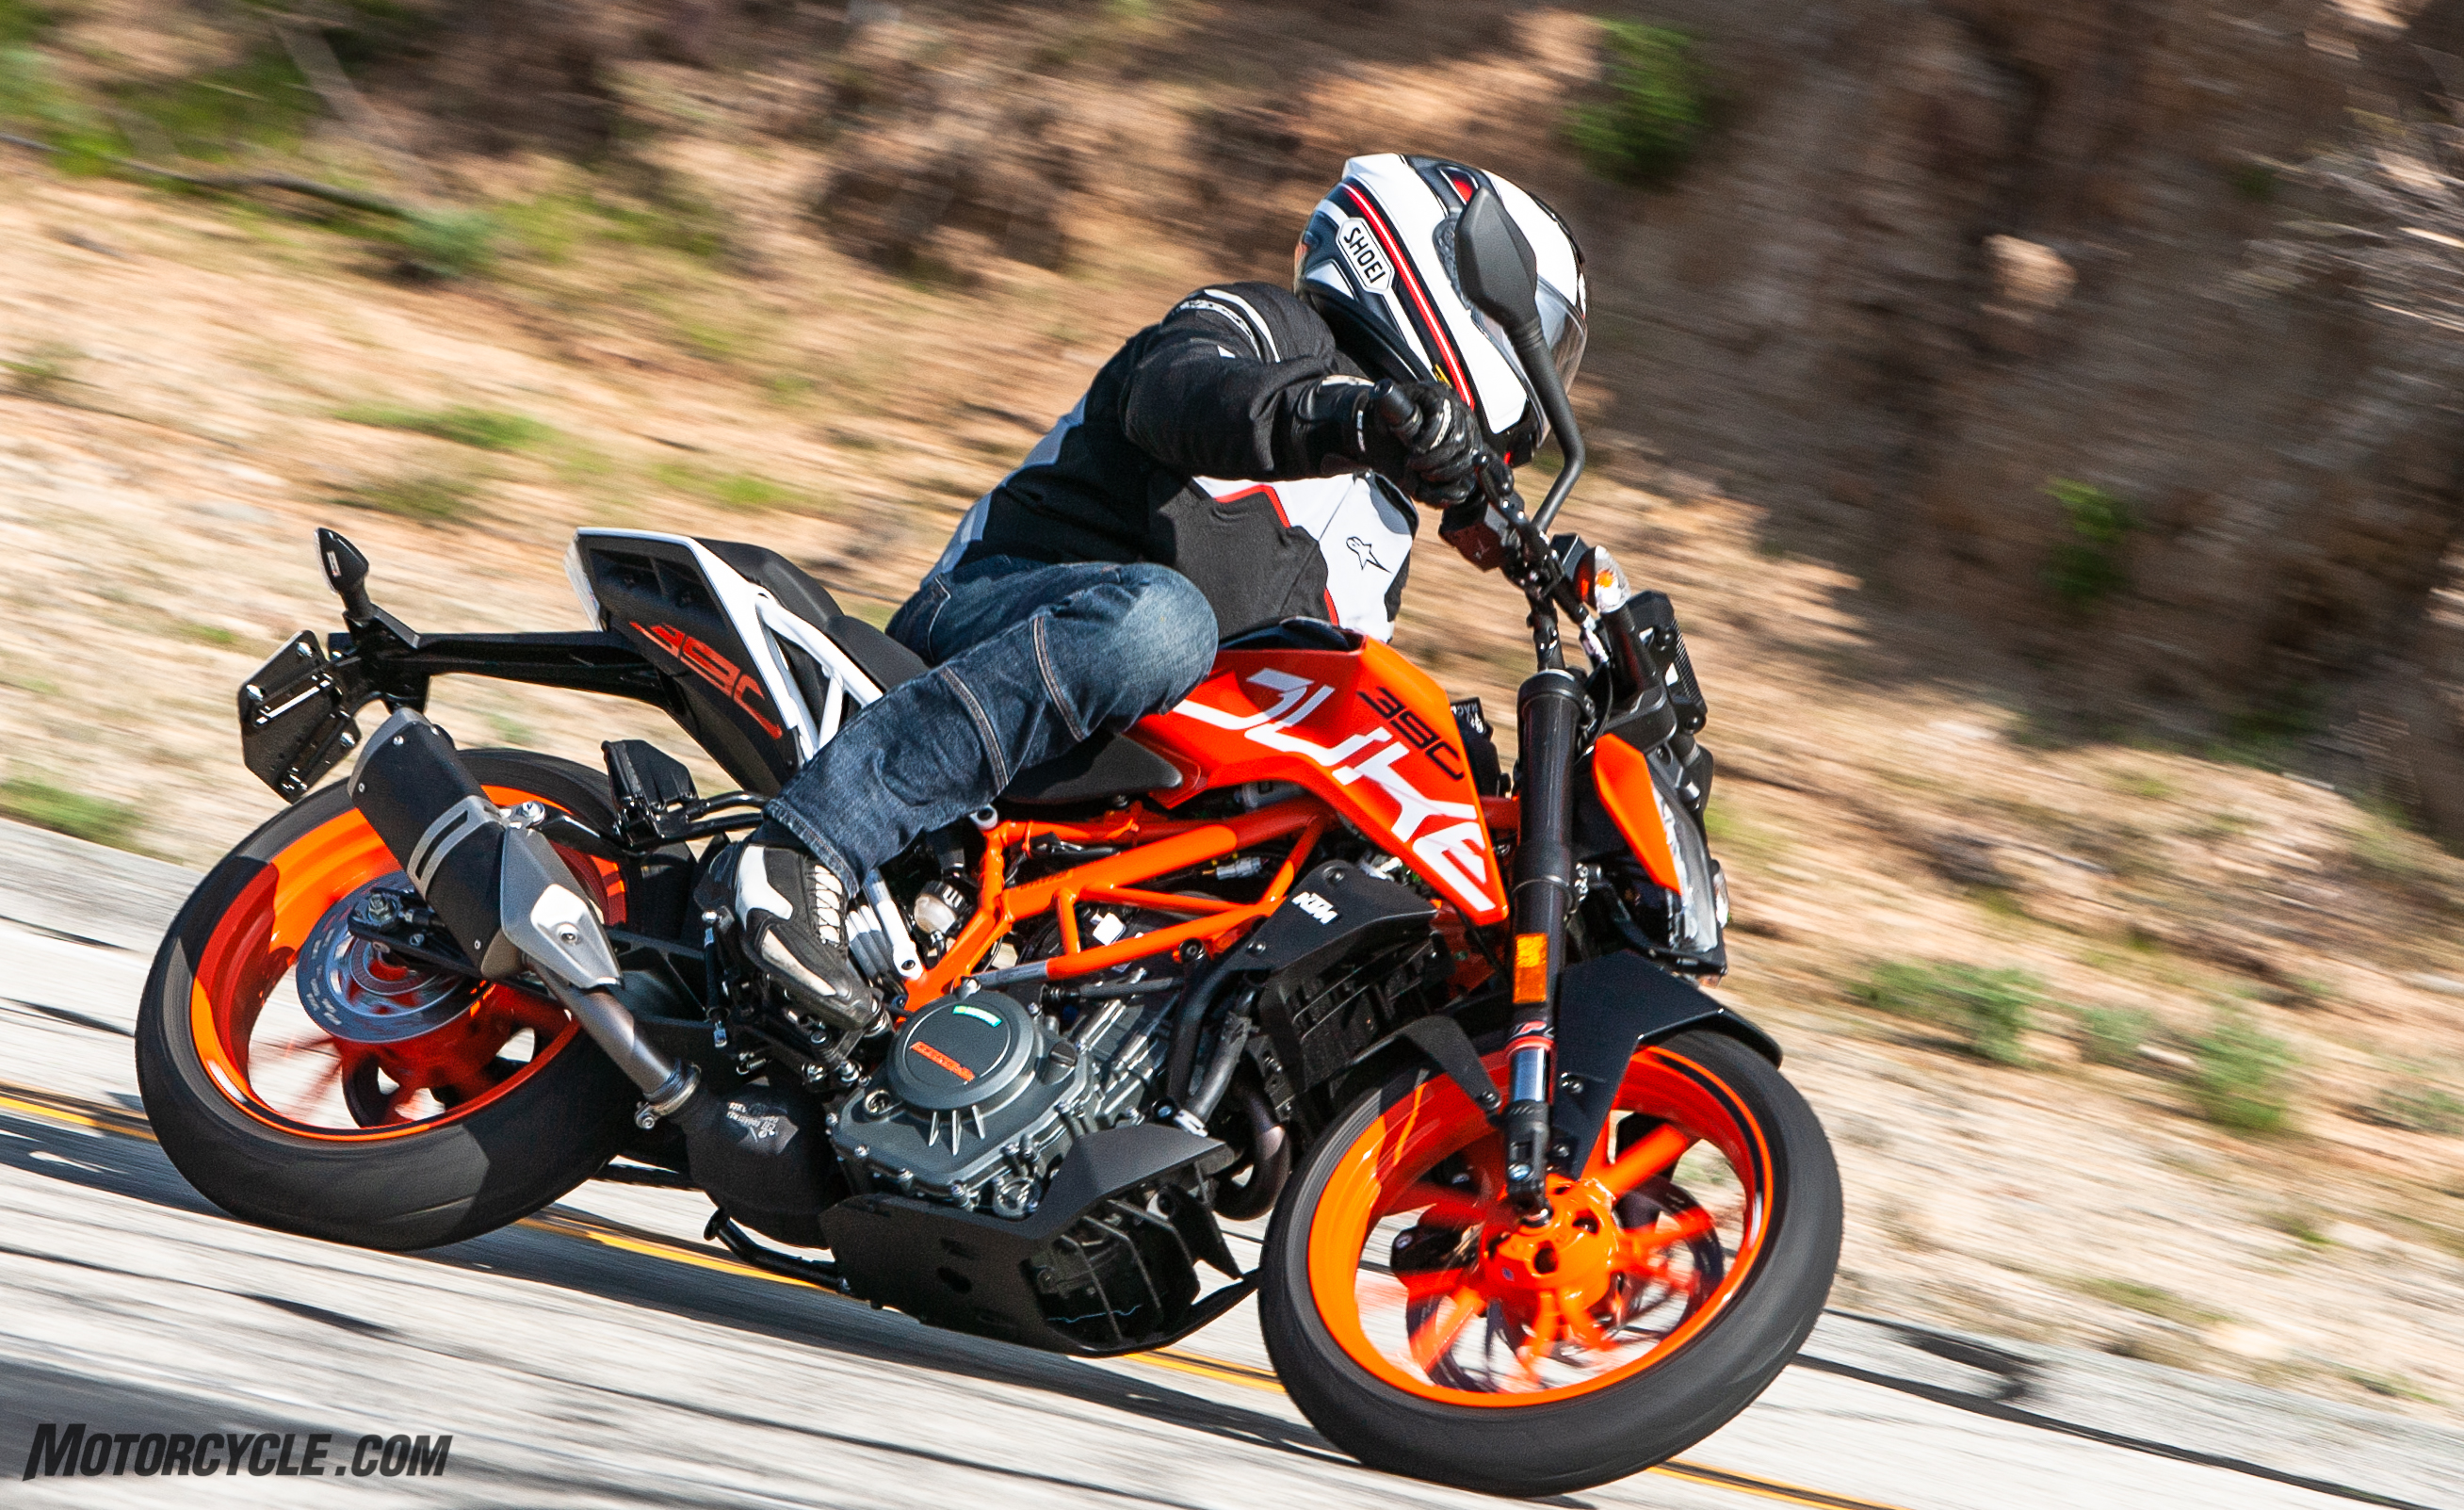 ktm motorcycle motorcycles duke 5000 five under round